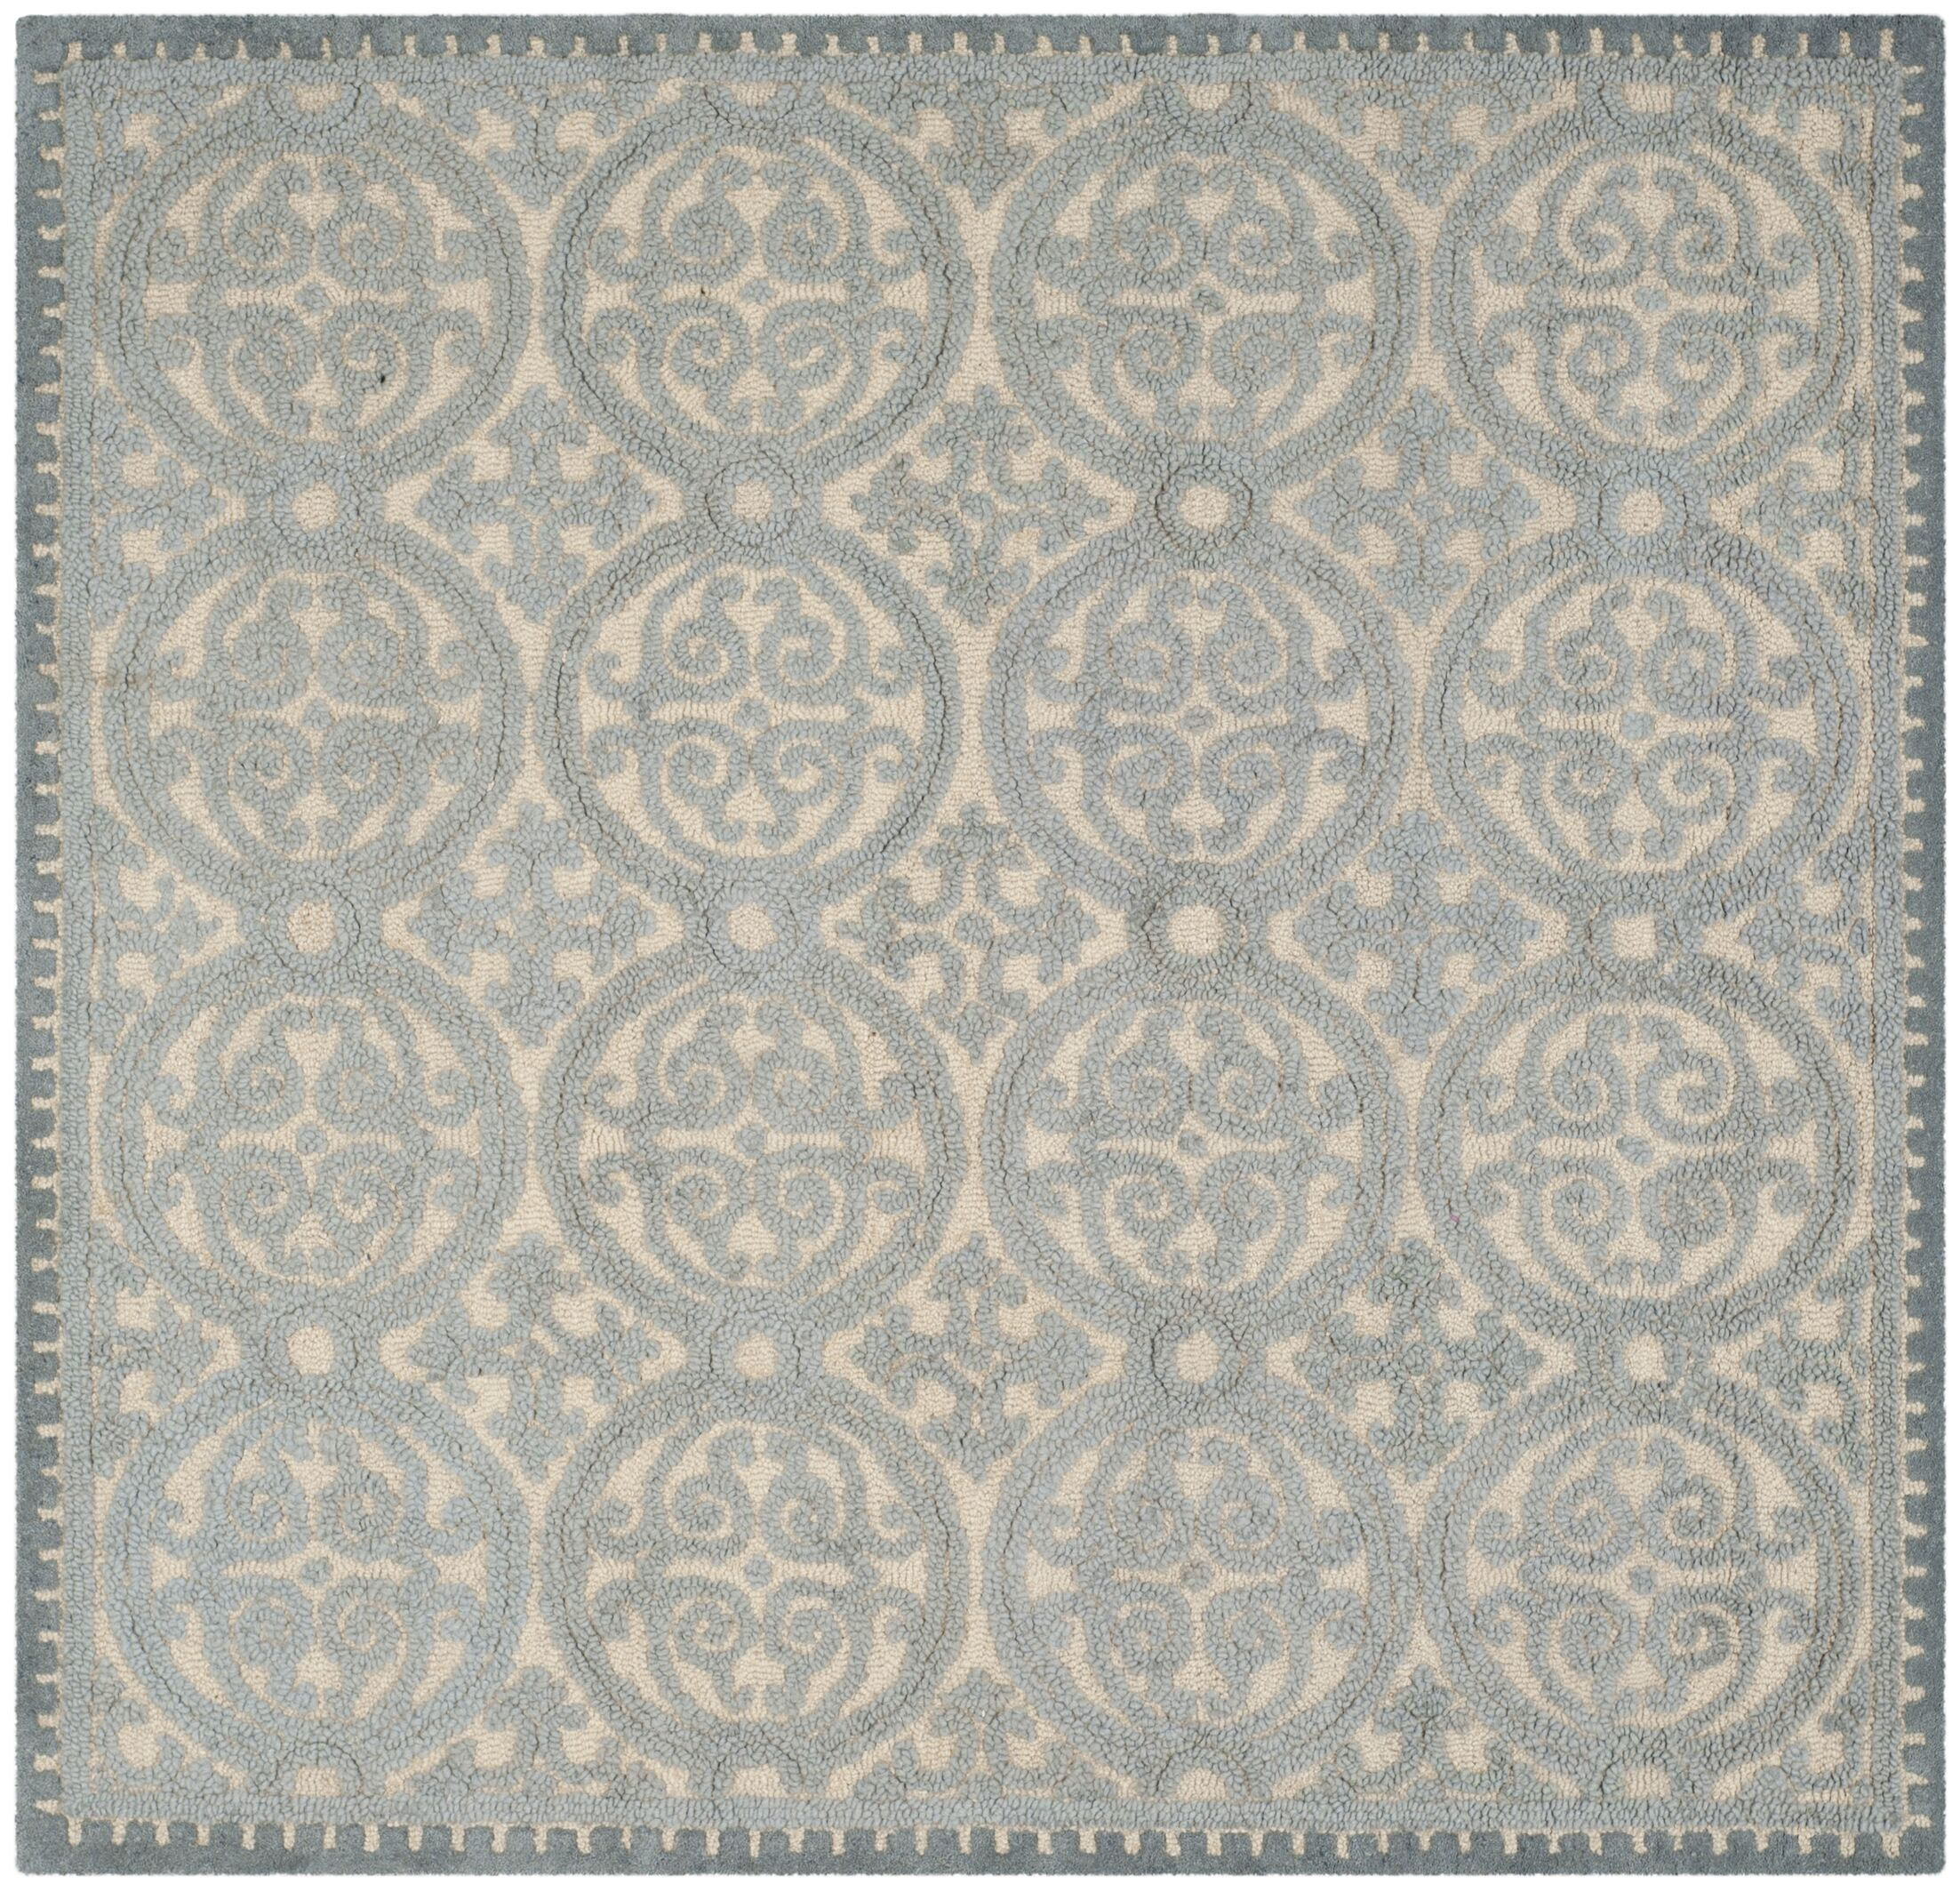 Cambridge Dusty Hand-Tufted Blue/Cement Area Rug Rug Size: Square 10'